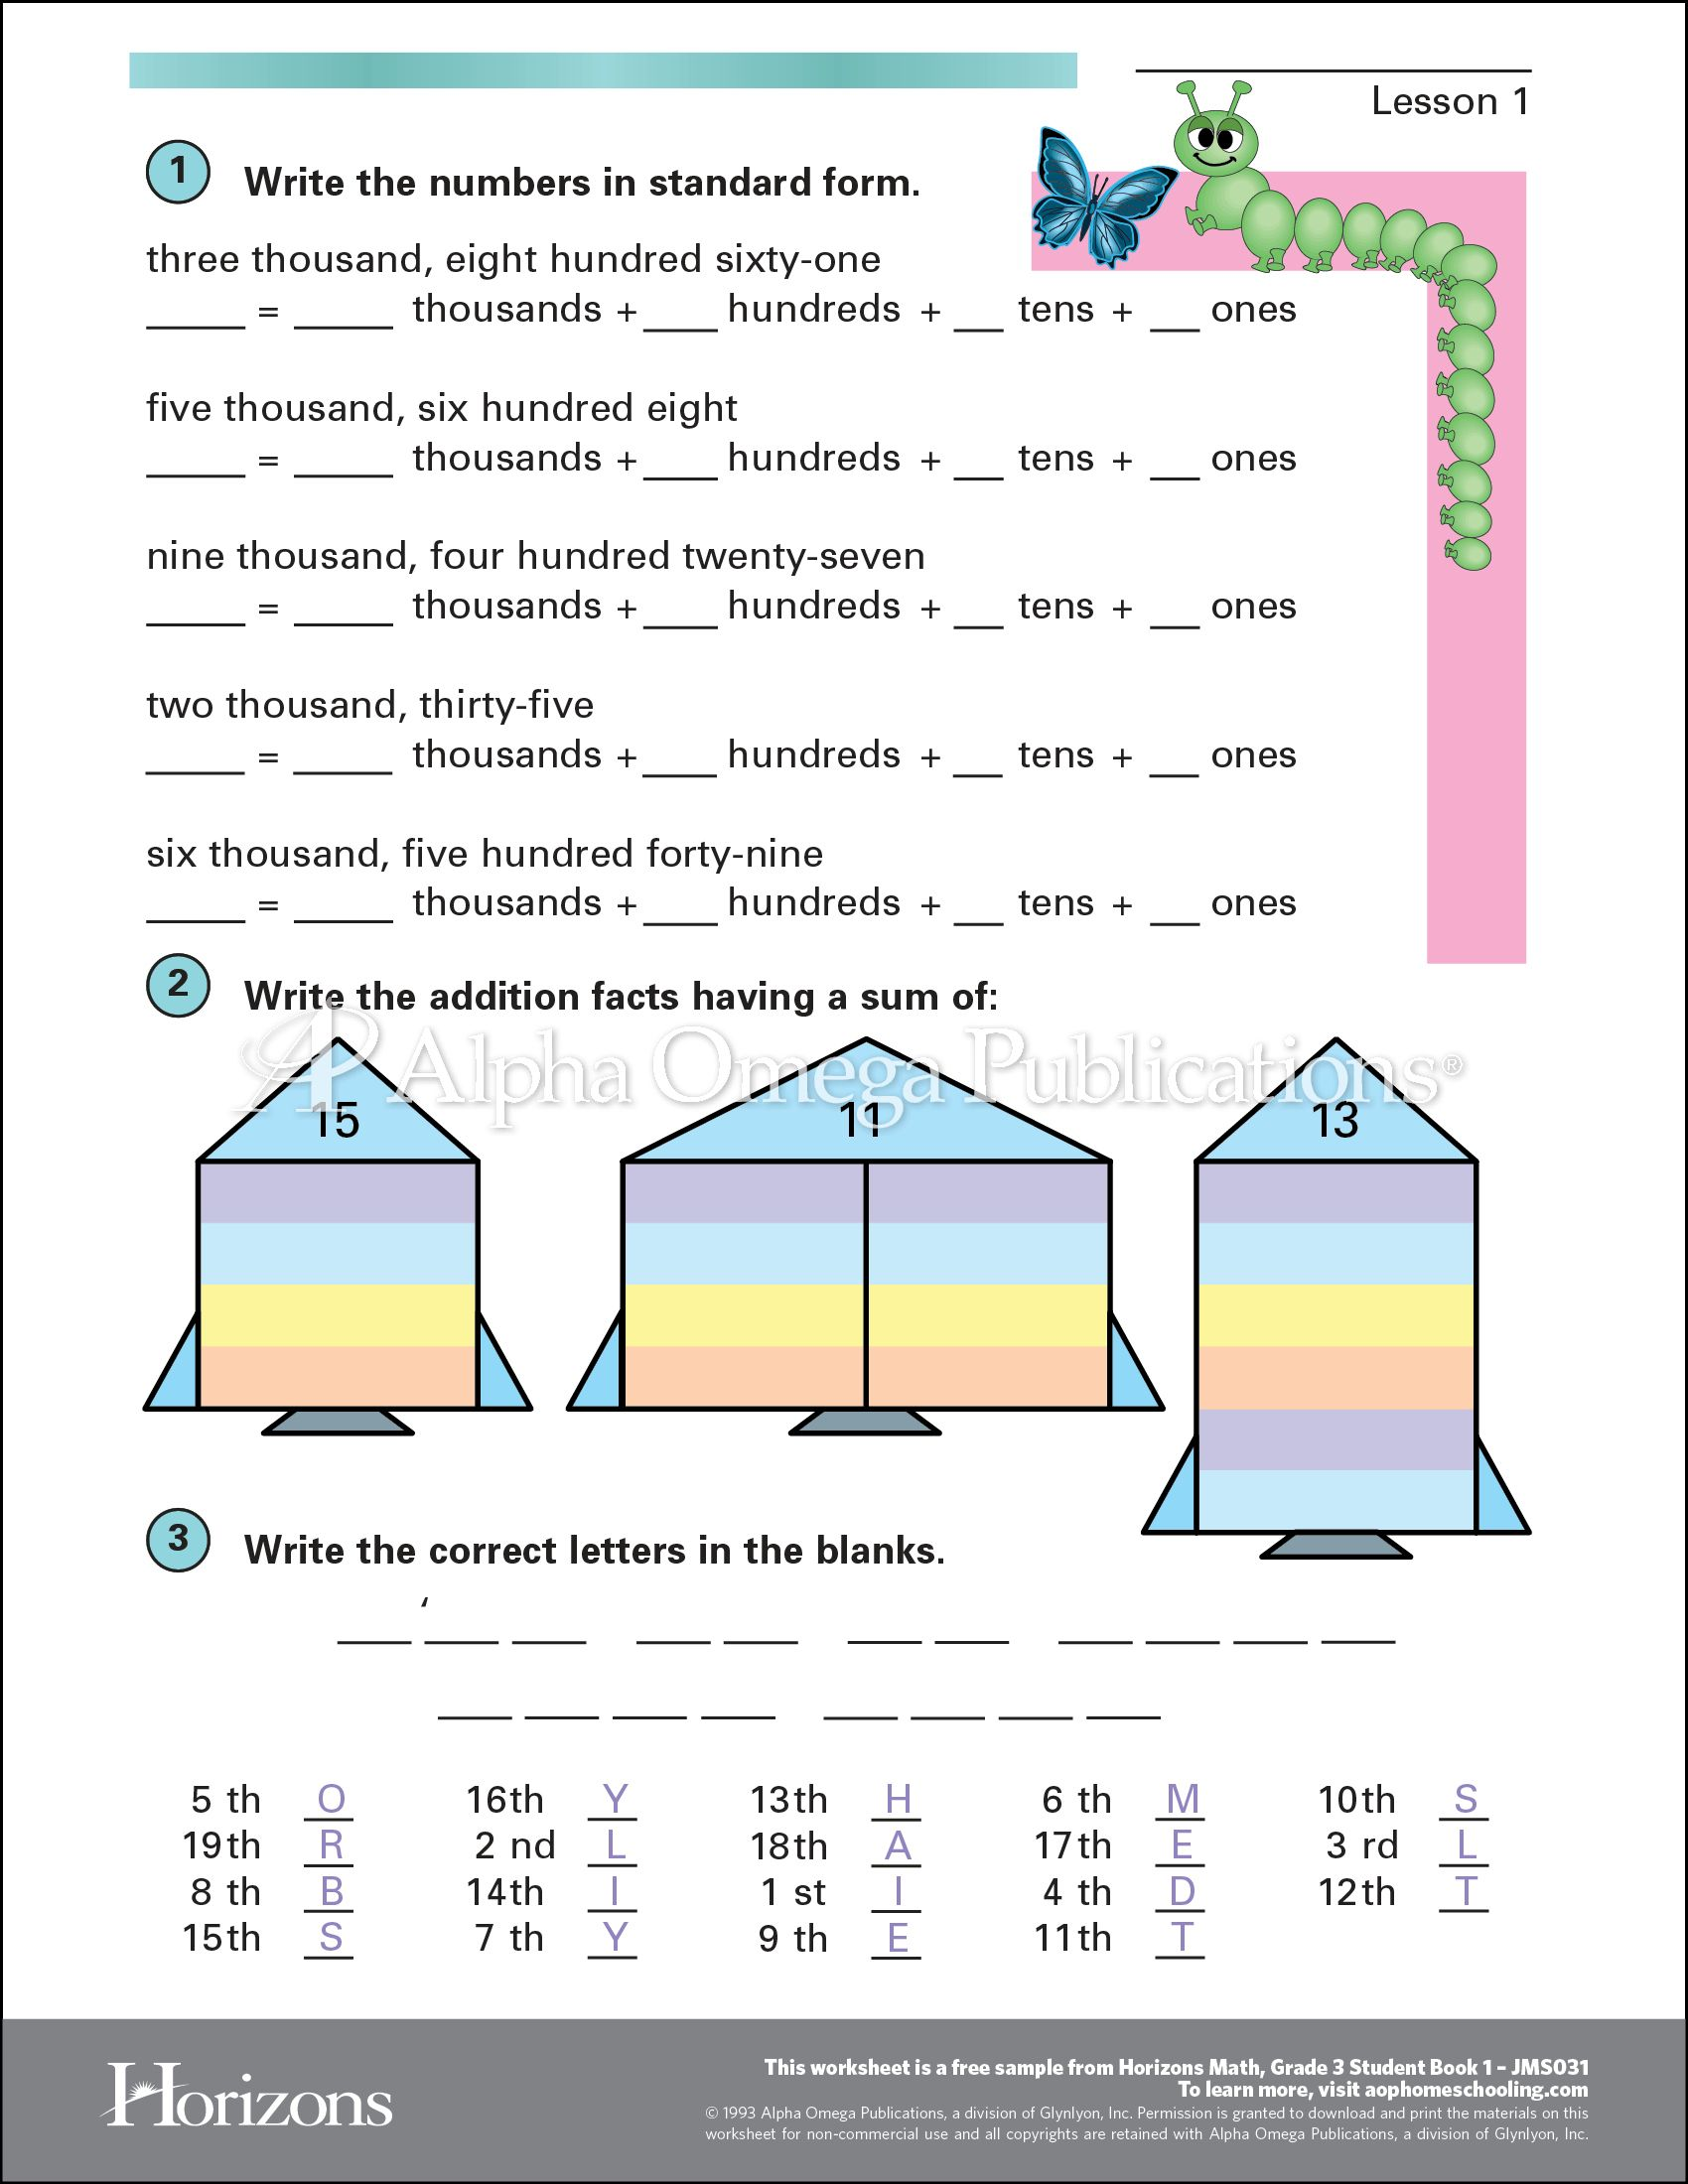 Aop Horizons Free Printable Worksheet Sample Page Download For Homeschooling From Alpha Omega